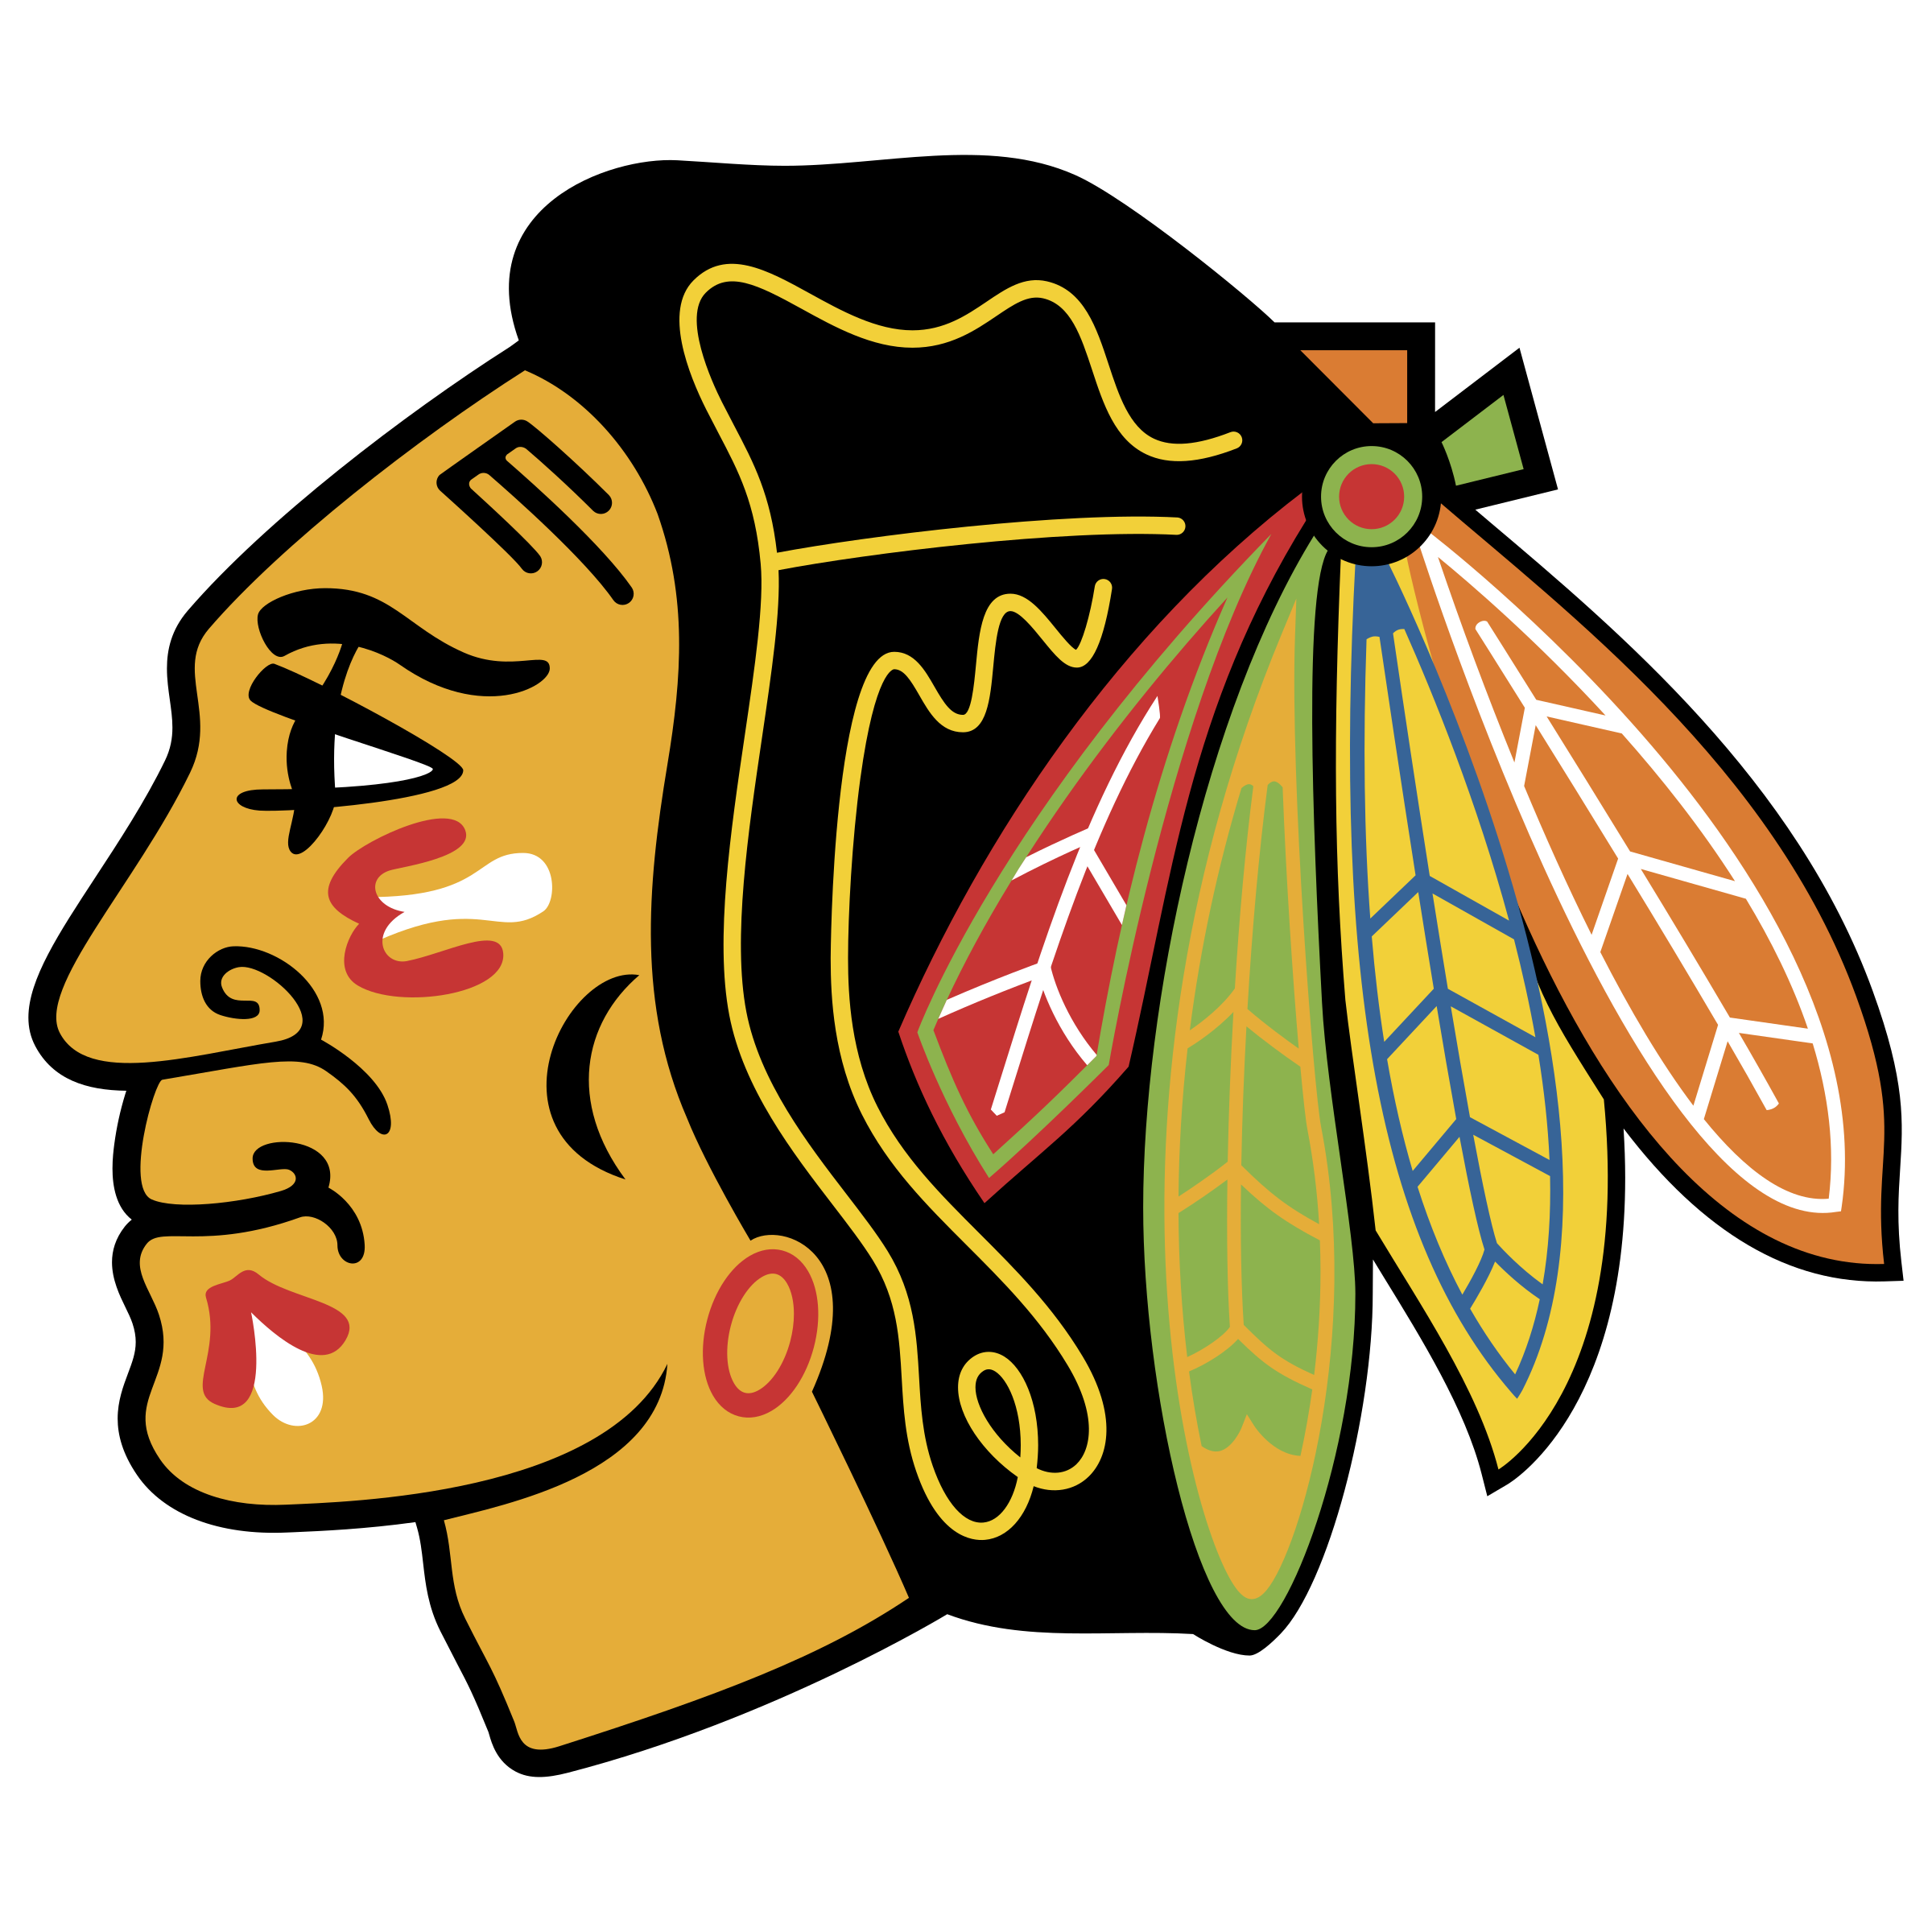 Chicago logo png transparent. Blackhawks svg picture royalty free